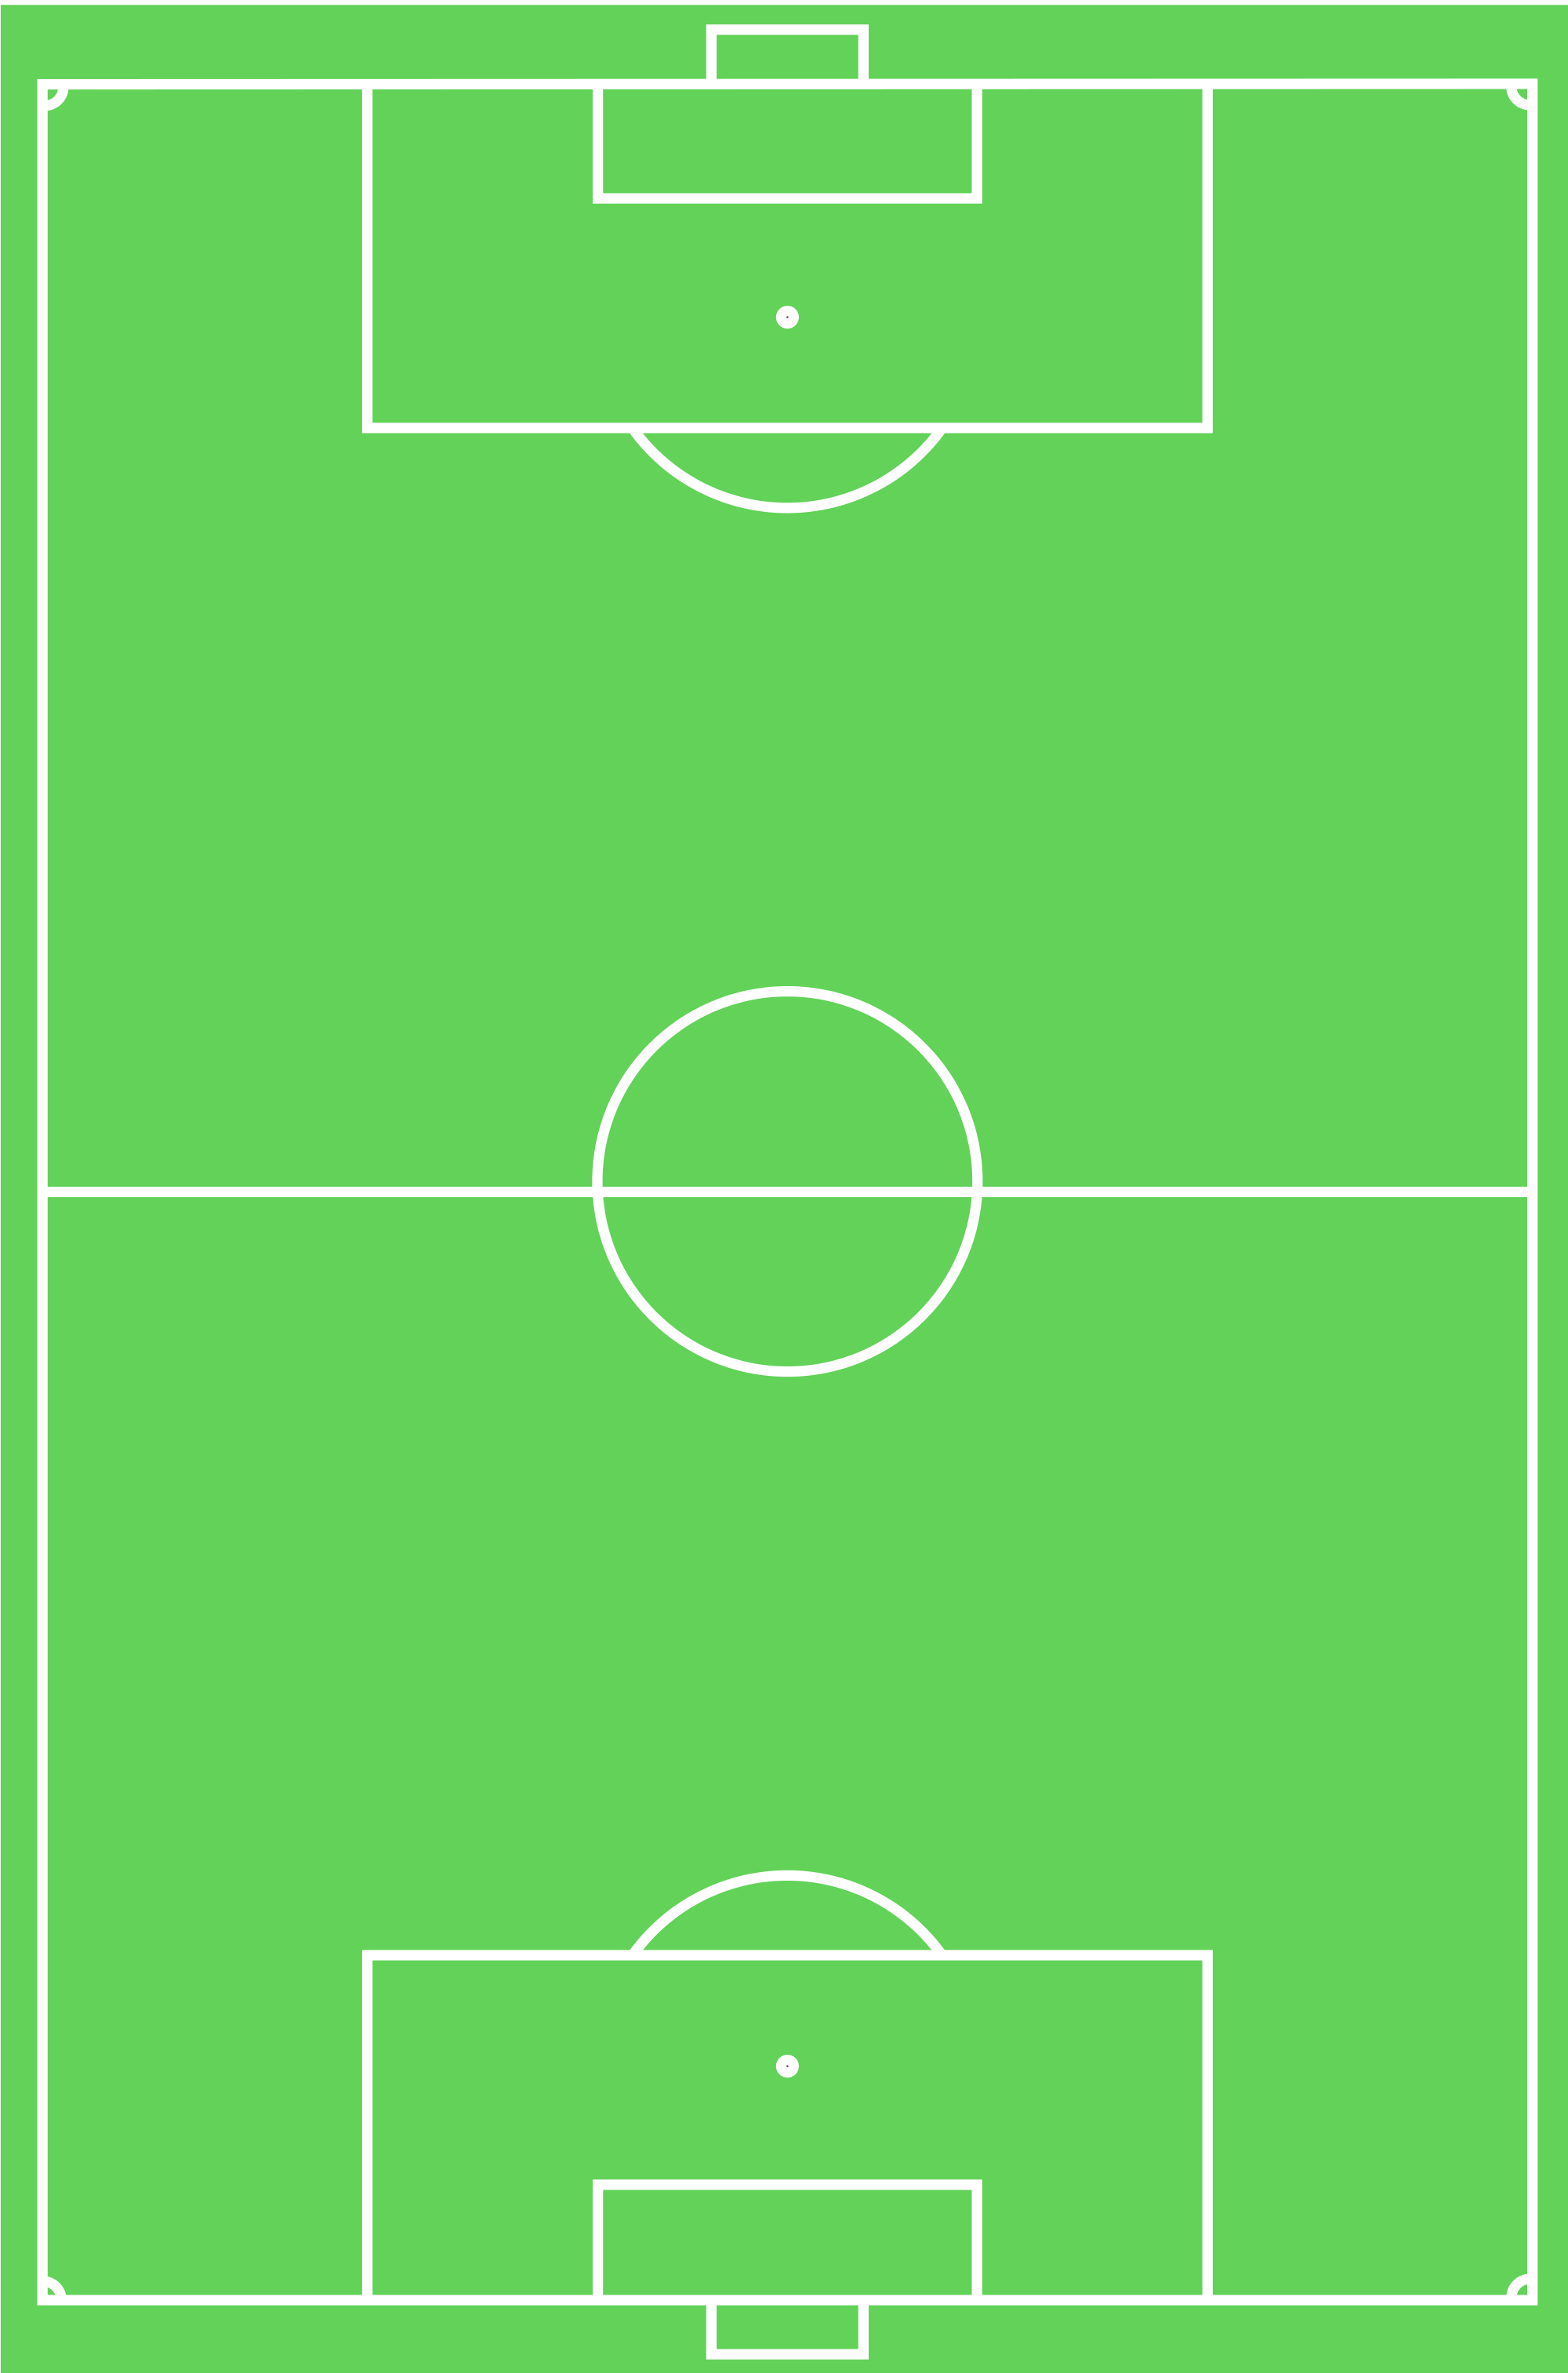 soccer field layout correct dimensions markings and cake on    soccer field layout correct dimensions markings and cake on pinterest cakepins com   templat   pinterest   beautiful crochet  football field and fields